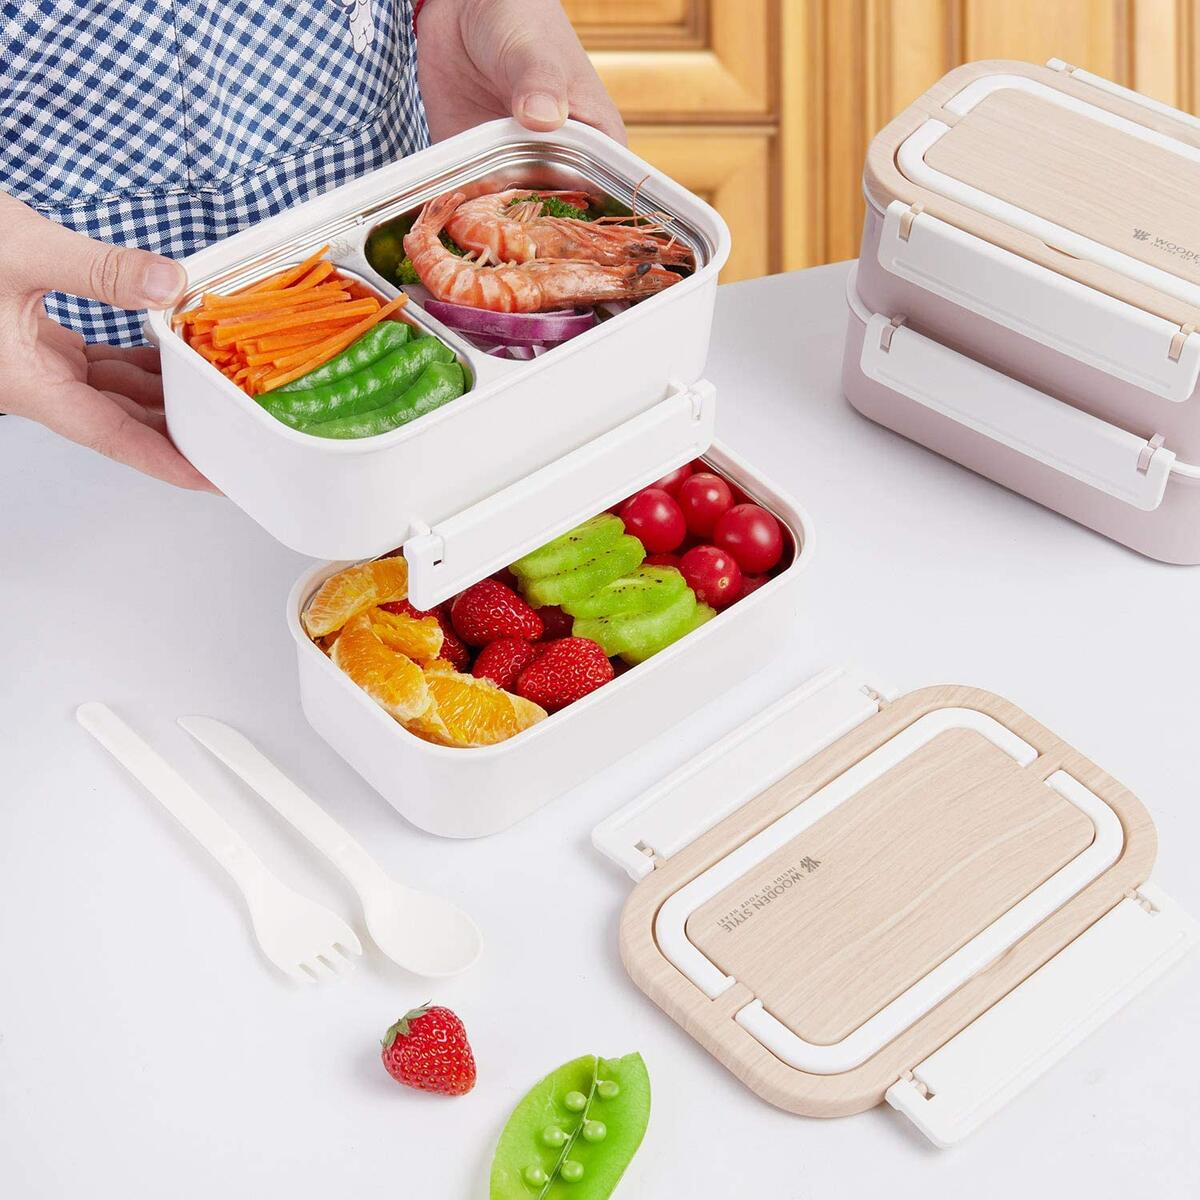 Stainless Steel Bento Box | Stackable Compartment & Bamboo &Leakproof Design Lunch Box | 2-Tier Portable Insulated Food Containerswith Utensil(White)